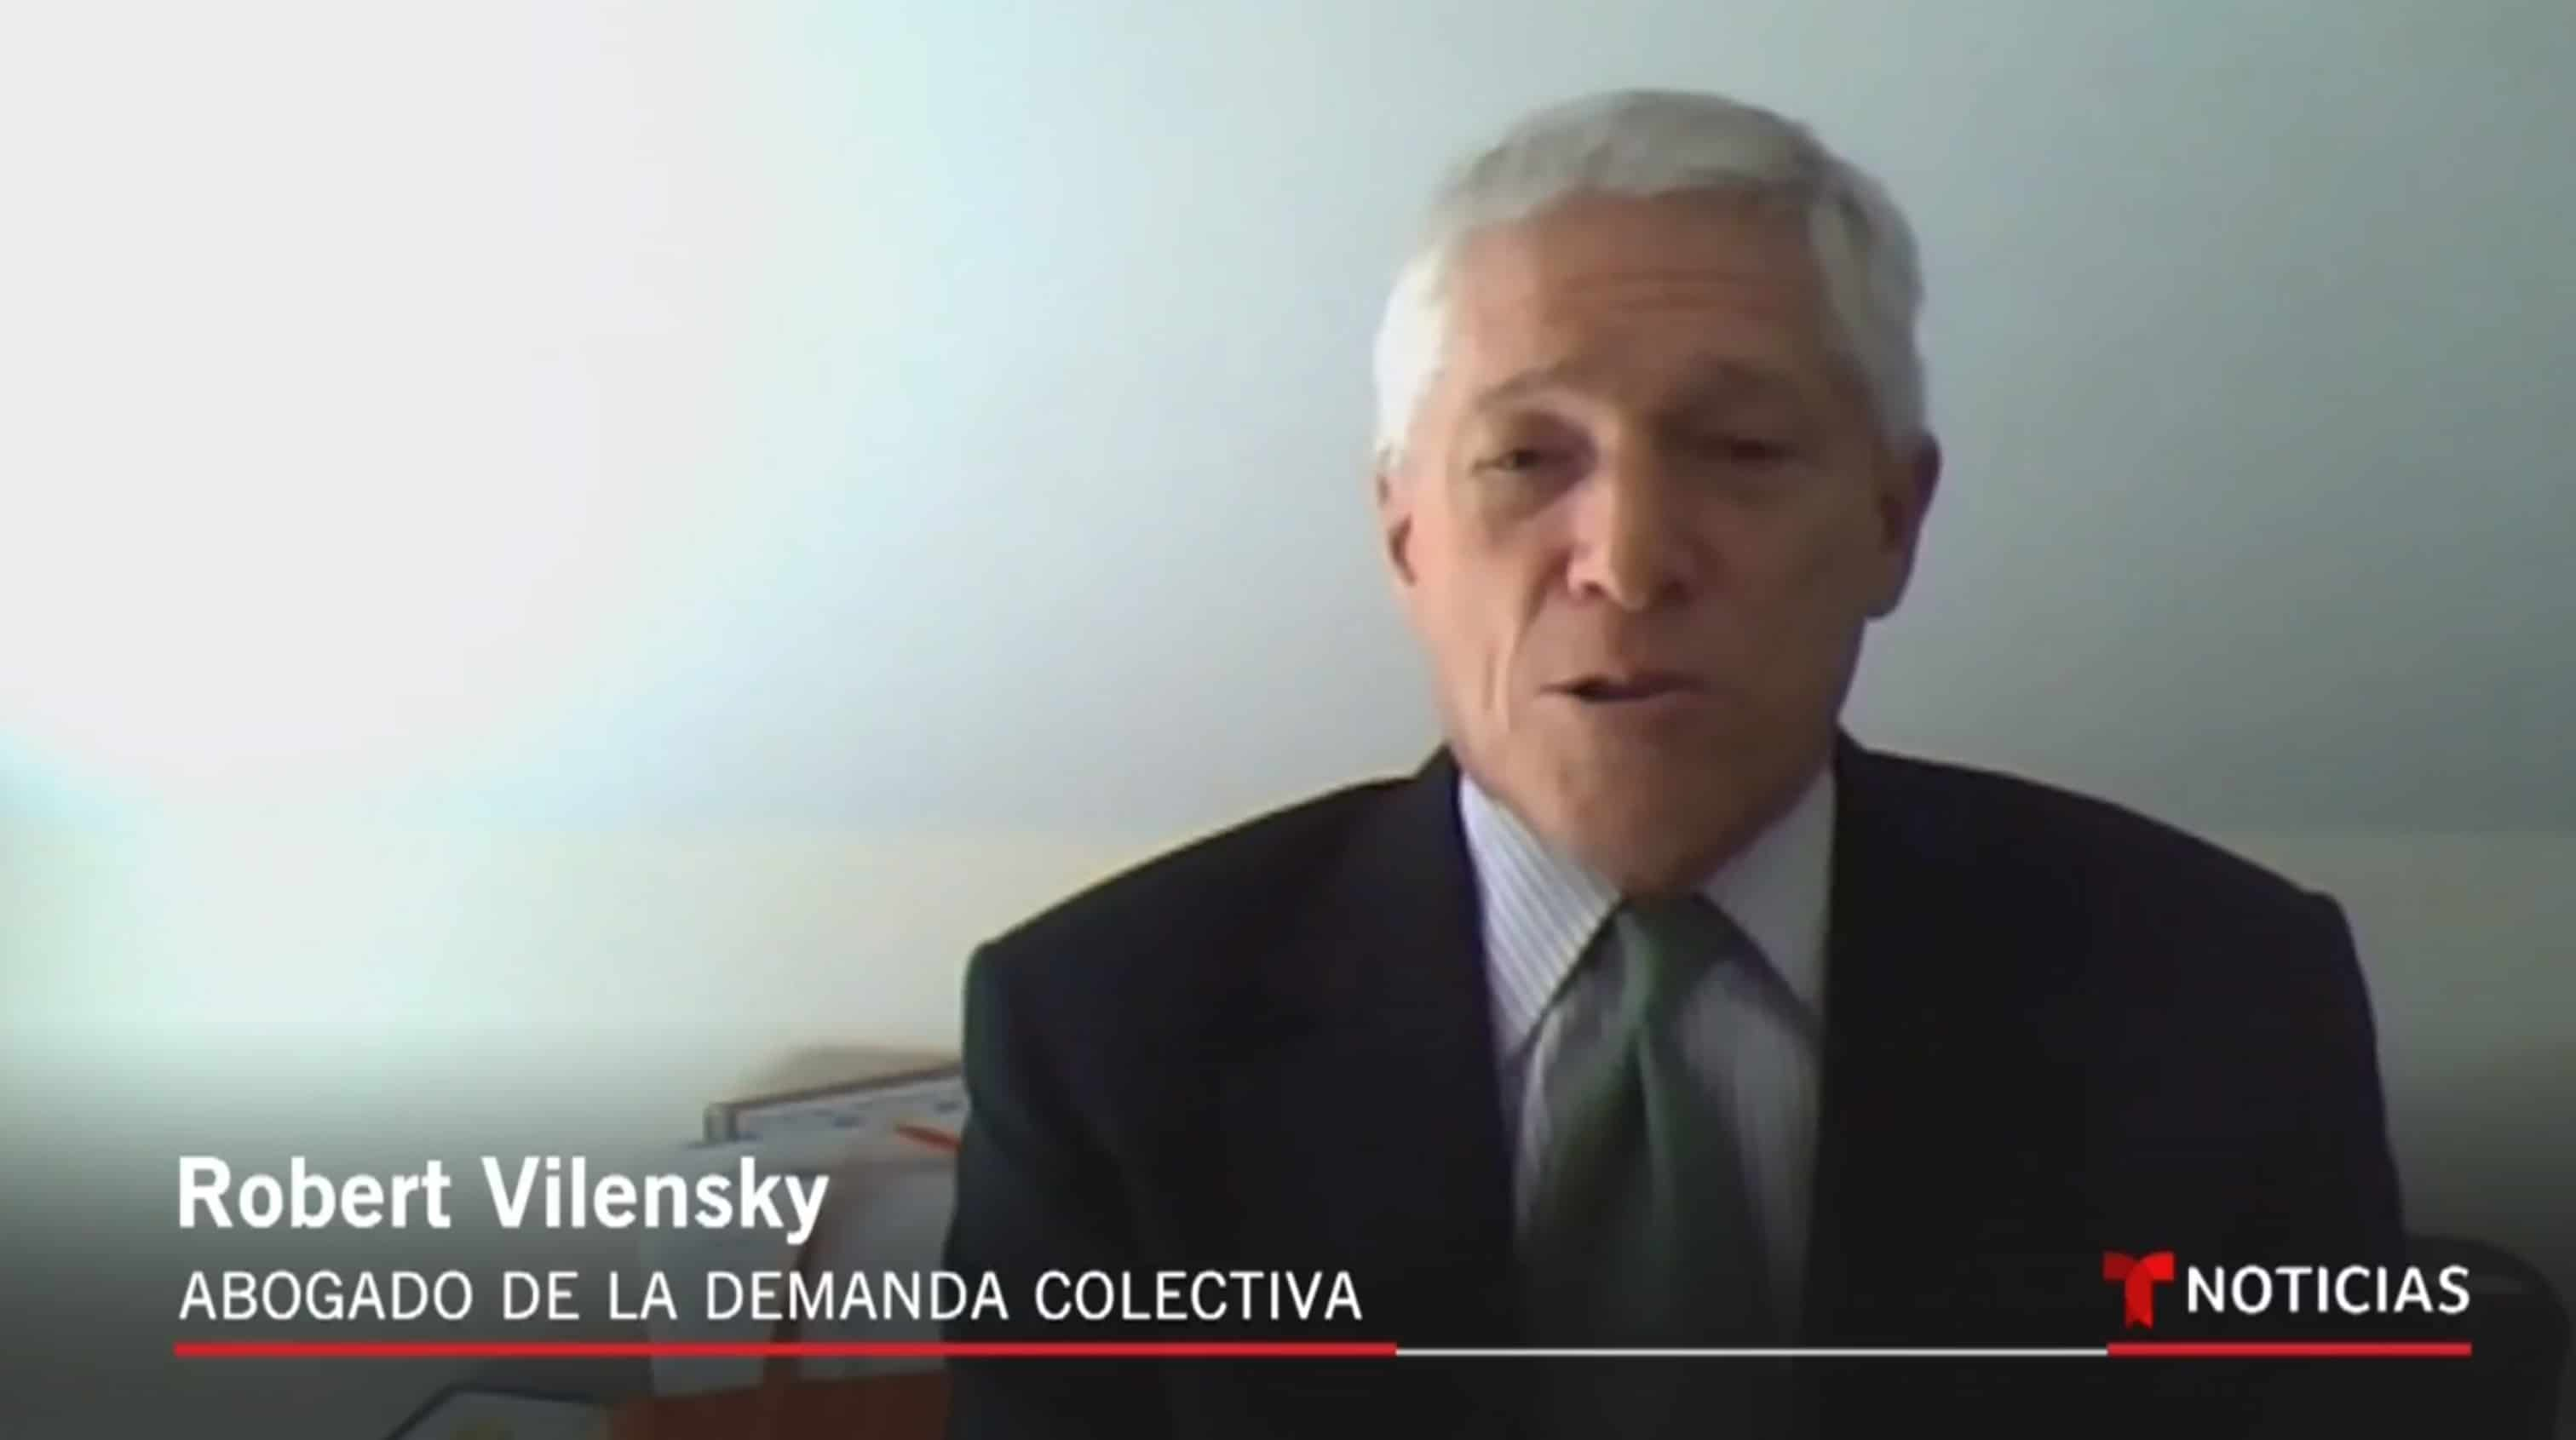 Robert Vilensky COVID-19 Telemundo Interview